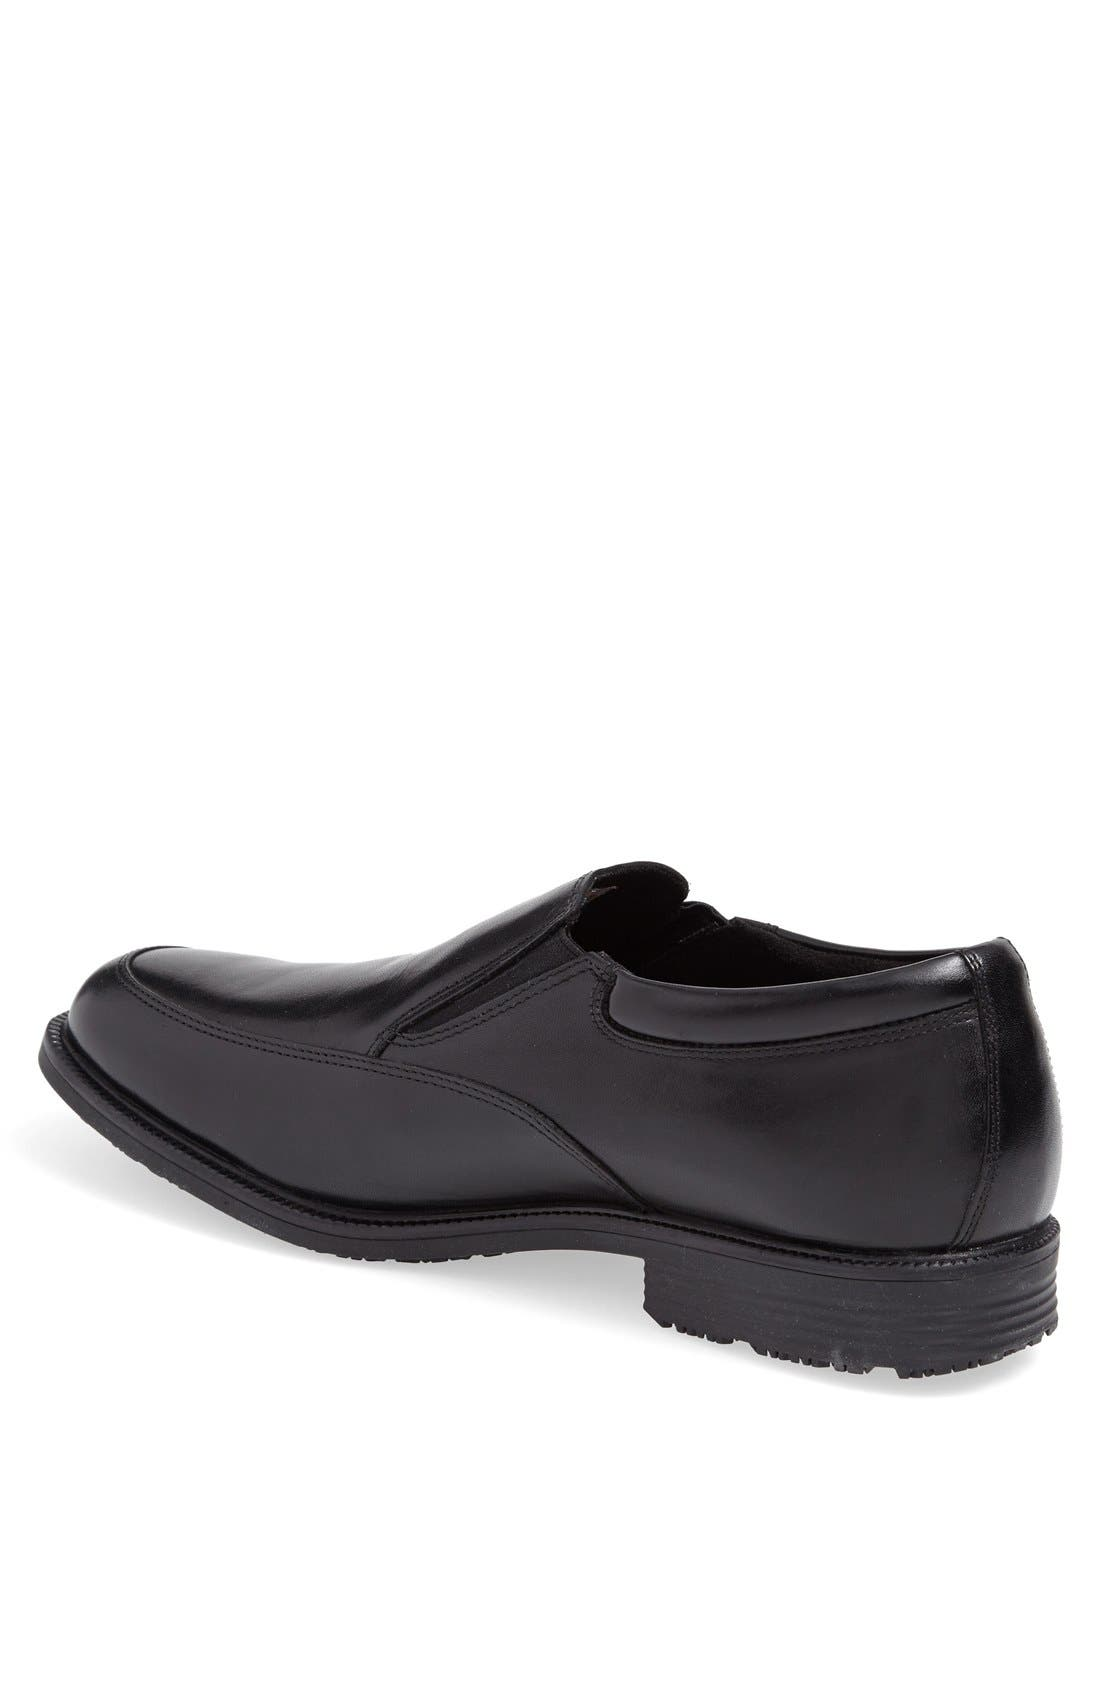 'Essential Details' Waterproof Loafer,                             Alternate thumbnail 4, color,                             BLACK